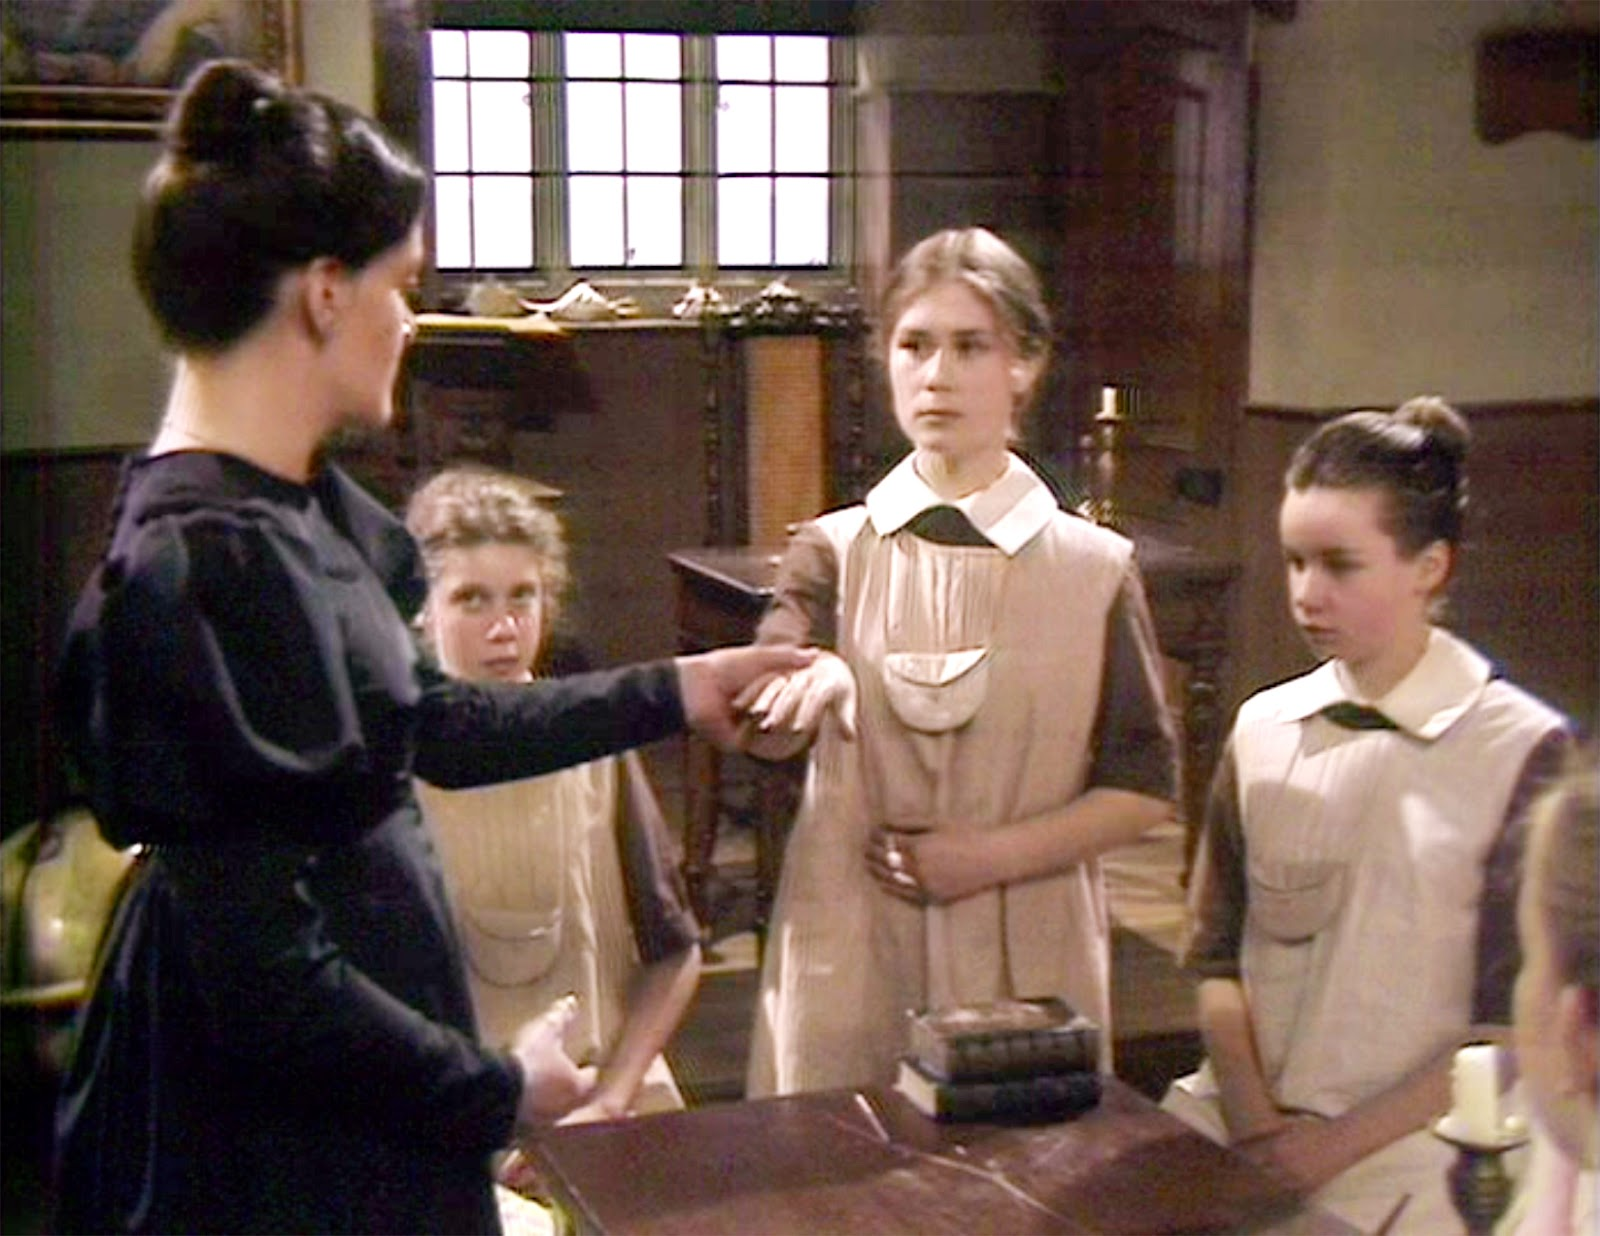 helen burns influence on jane eyre An analysis of the relationship between jane and her childhood friend, helen burns, in charlotte brontë's novel 'jane eyre'  helen's influence over jane .